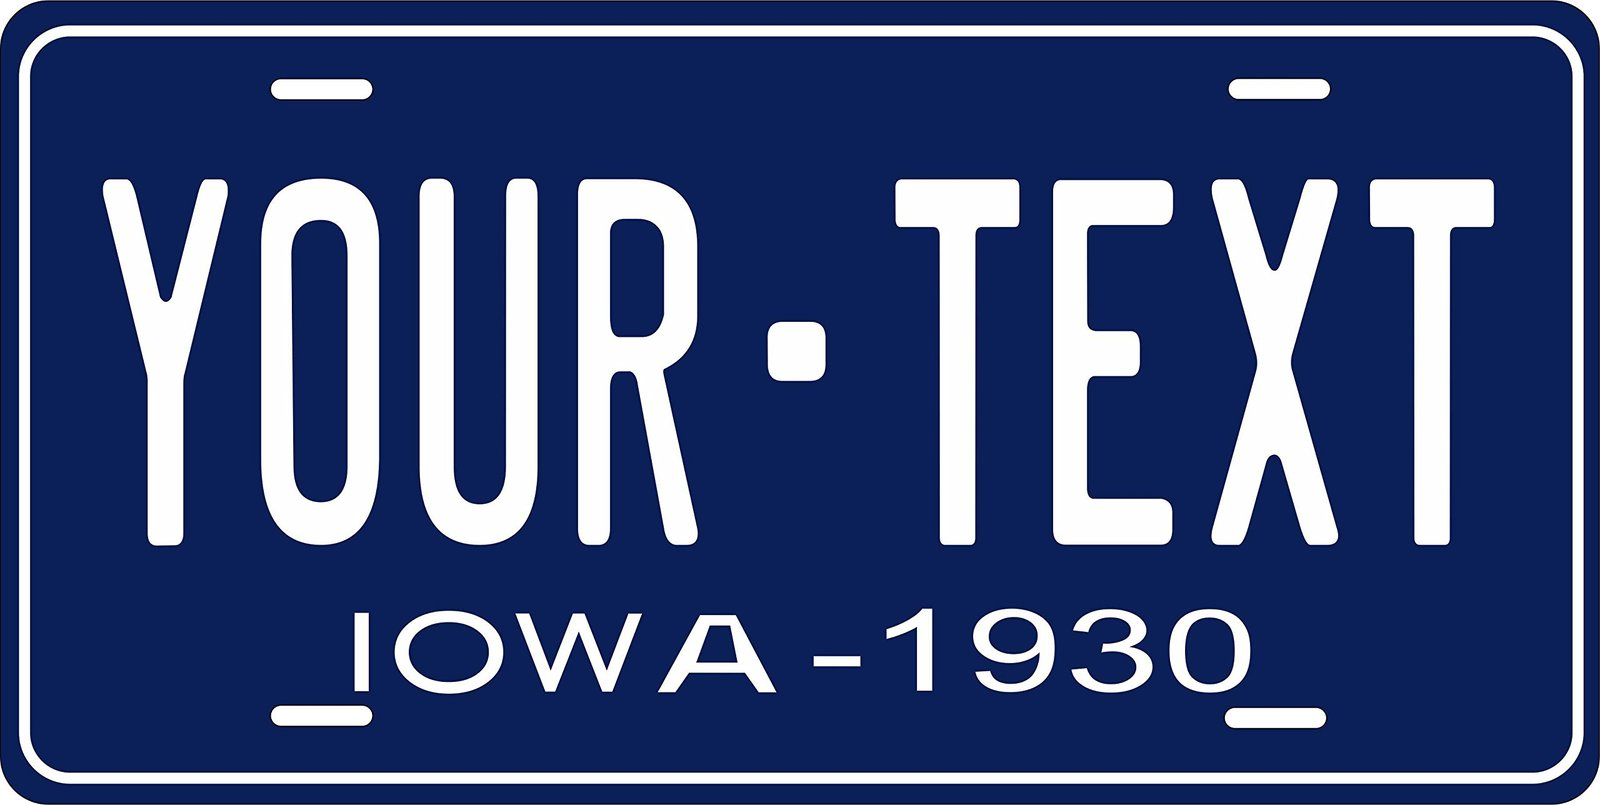 Iowa 1930 Personalized Tag Vehicle Car Auto License Plate